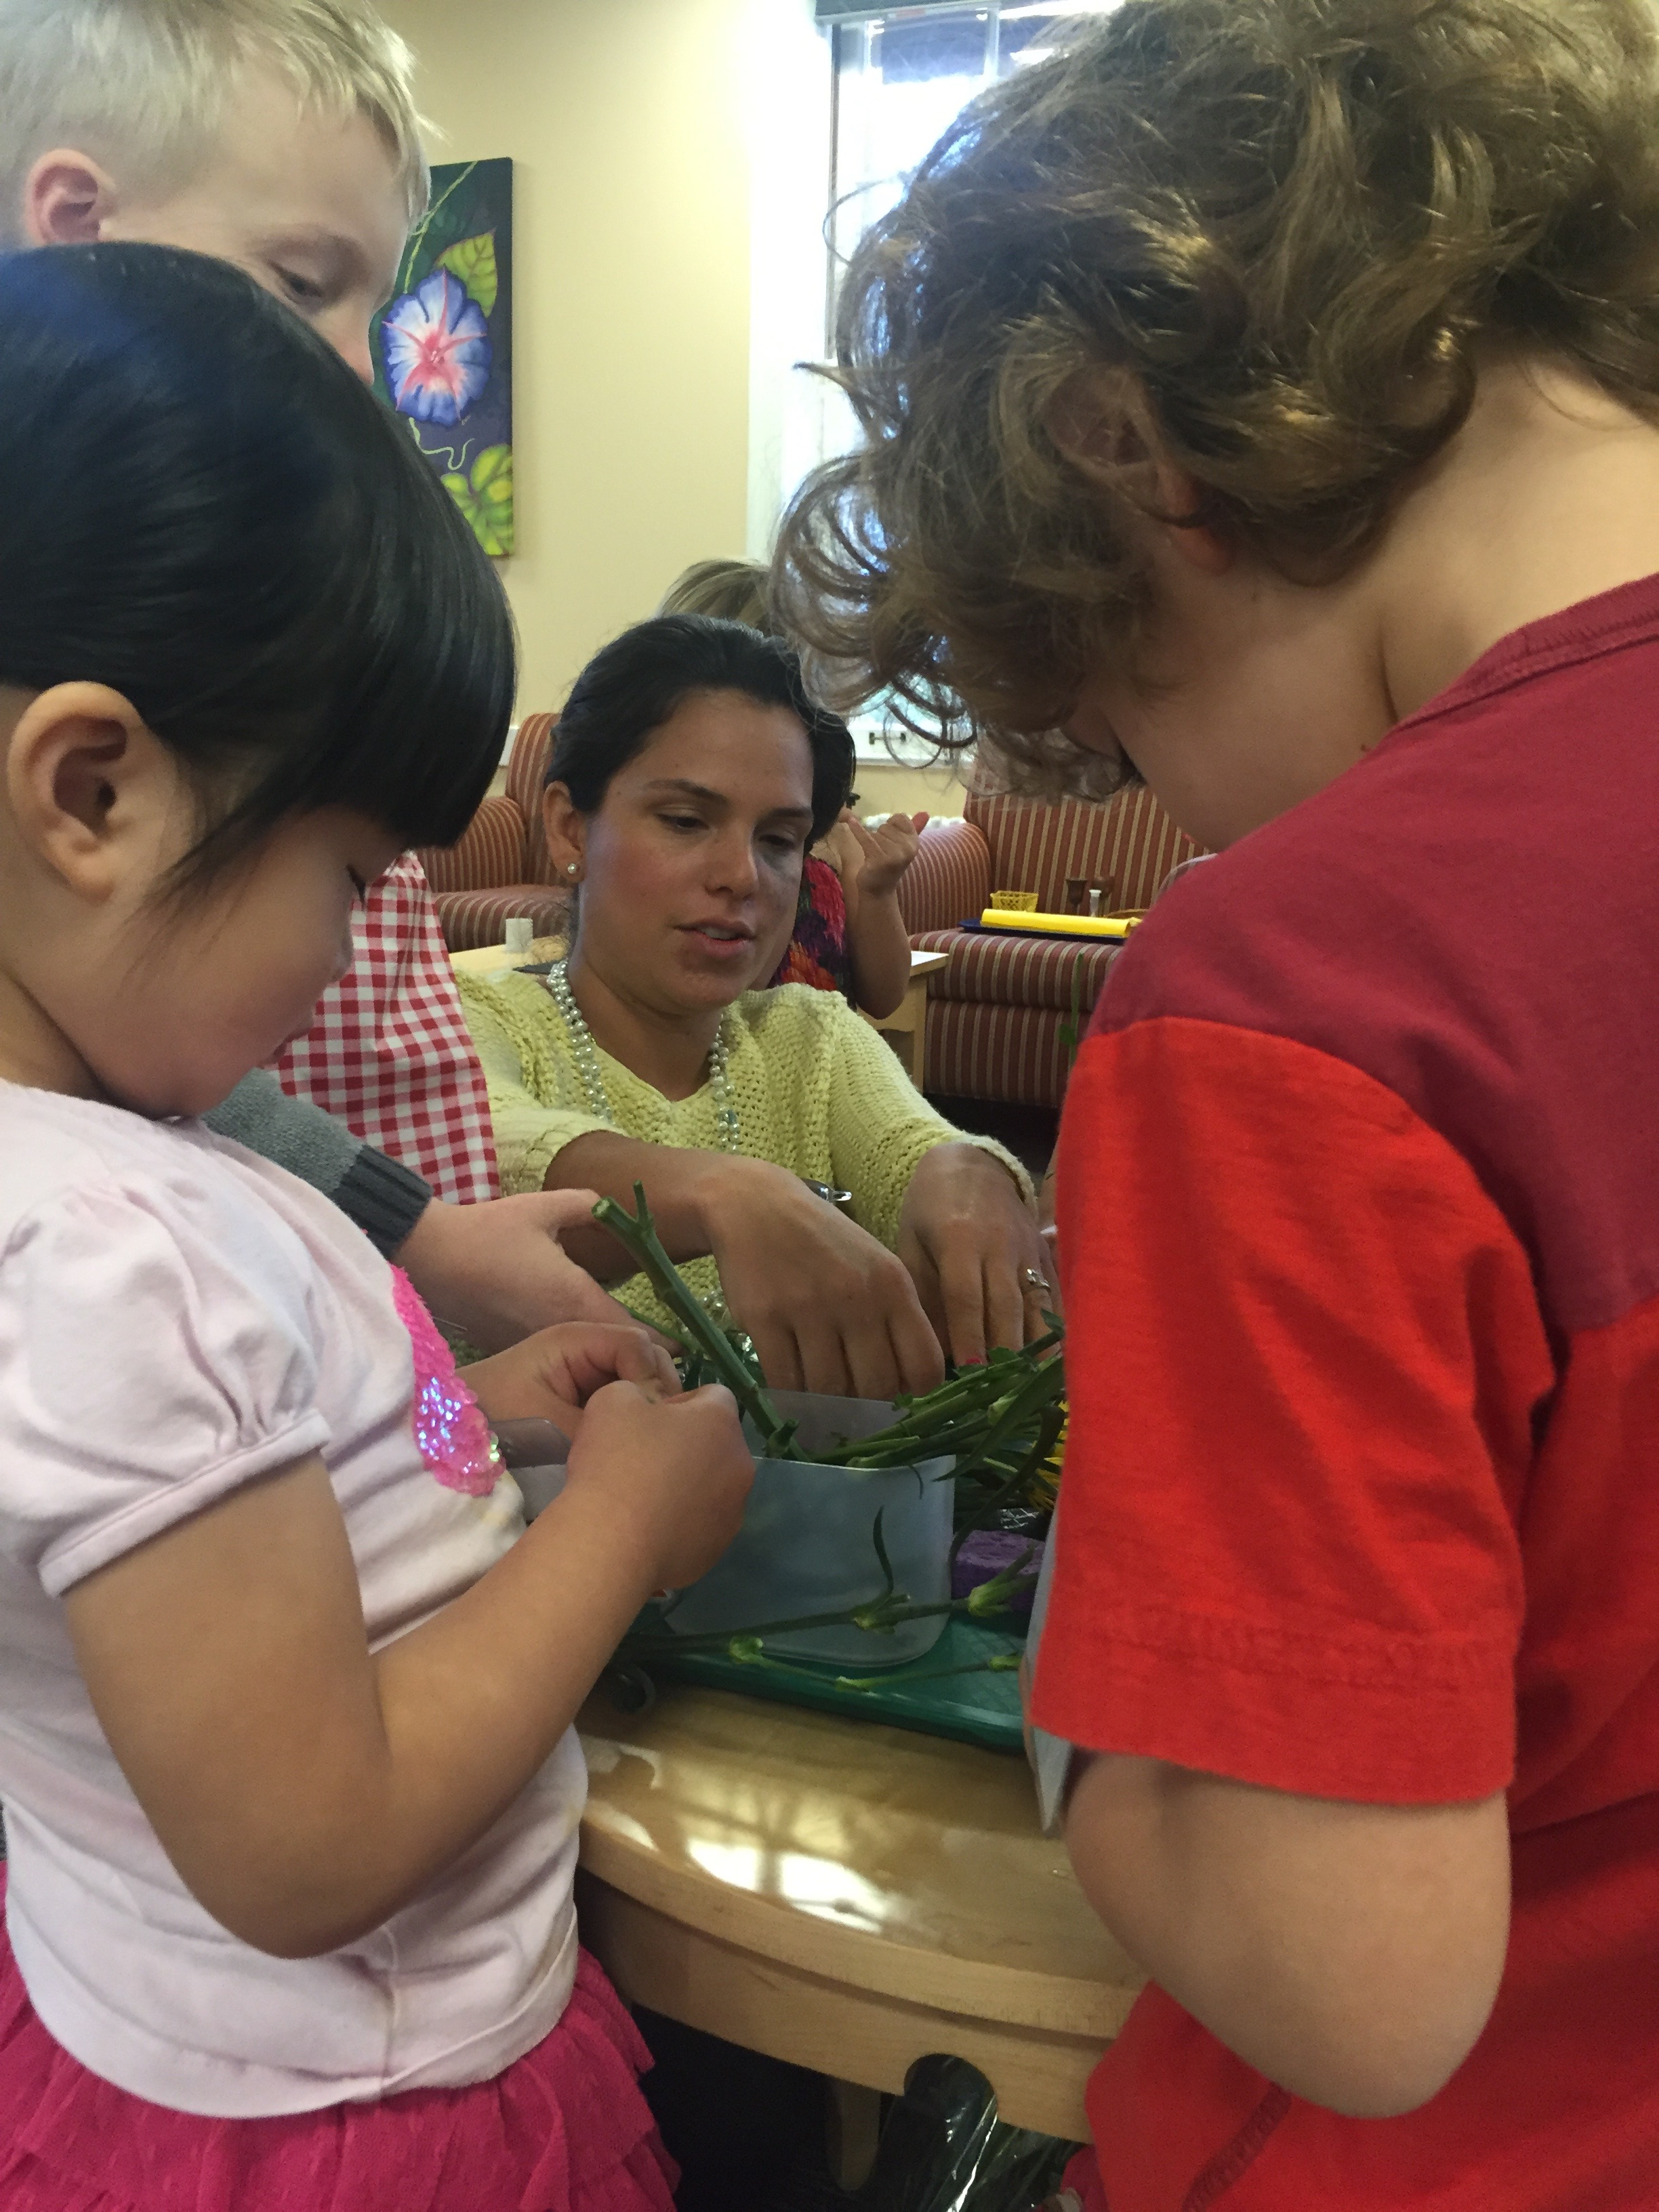 Catechist Emma, assists Level I children with learning through the CGS handson works, about the Mass parts, bible stories and their relationship with Jesus.